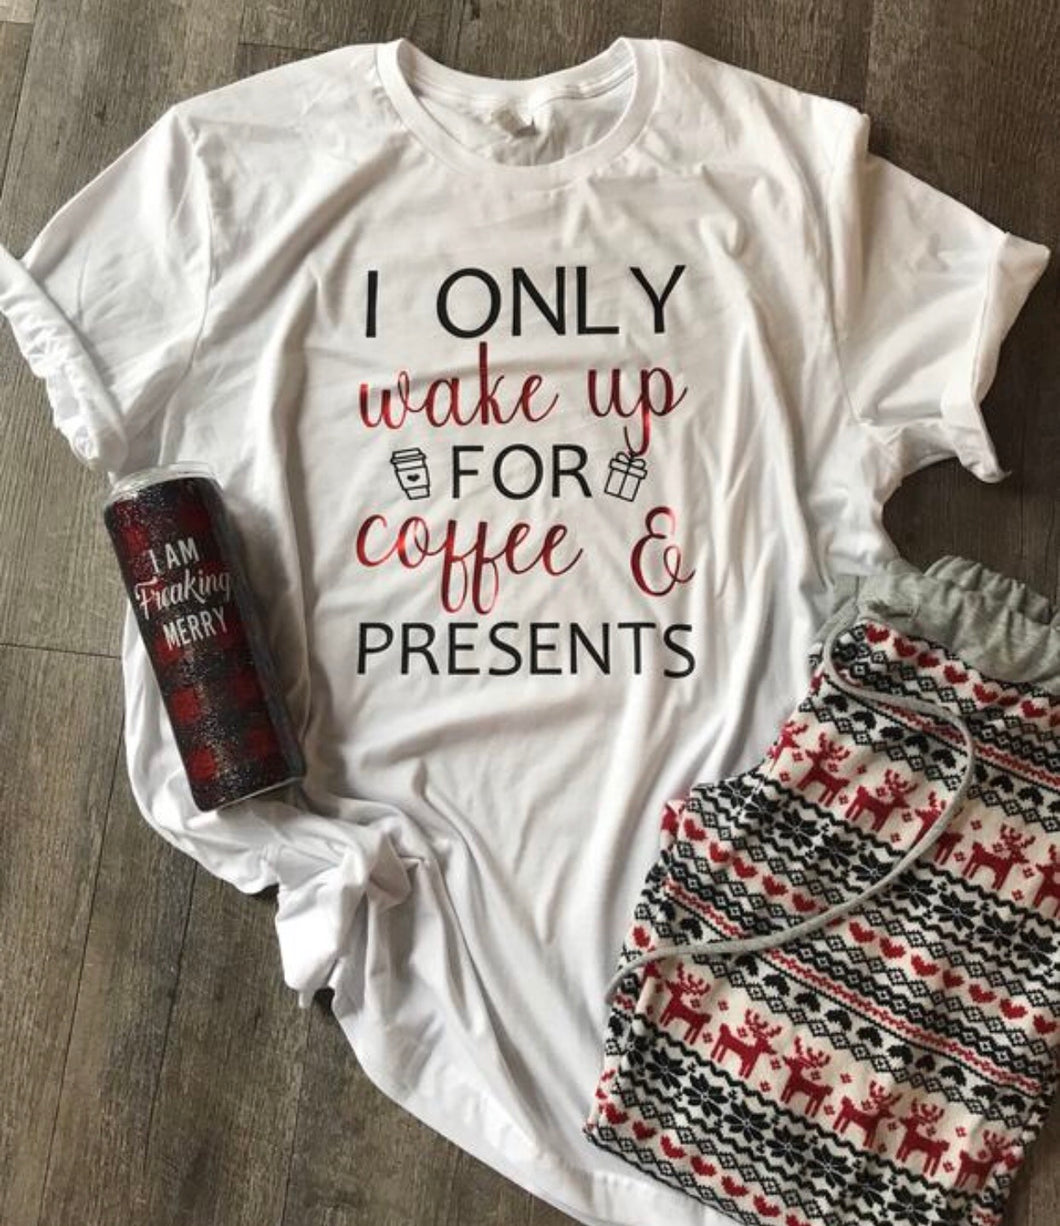 I only wake up for coffee and presents custom christmas morning tee graphic tshirt. Christmas gift. - Mavictoria Designs Hot Press Express